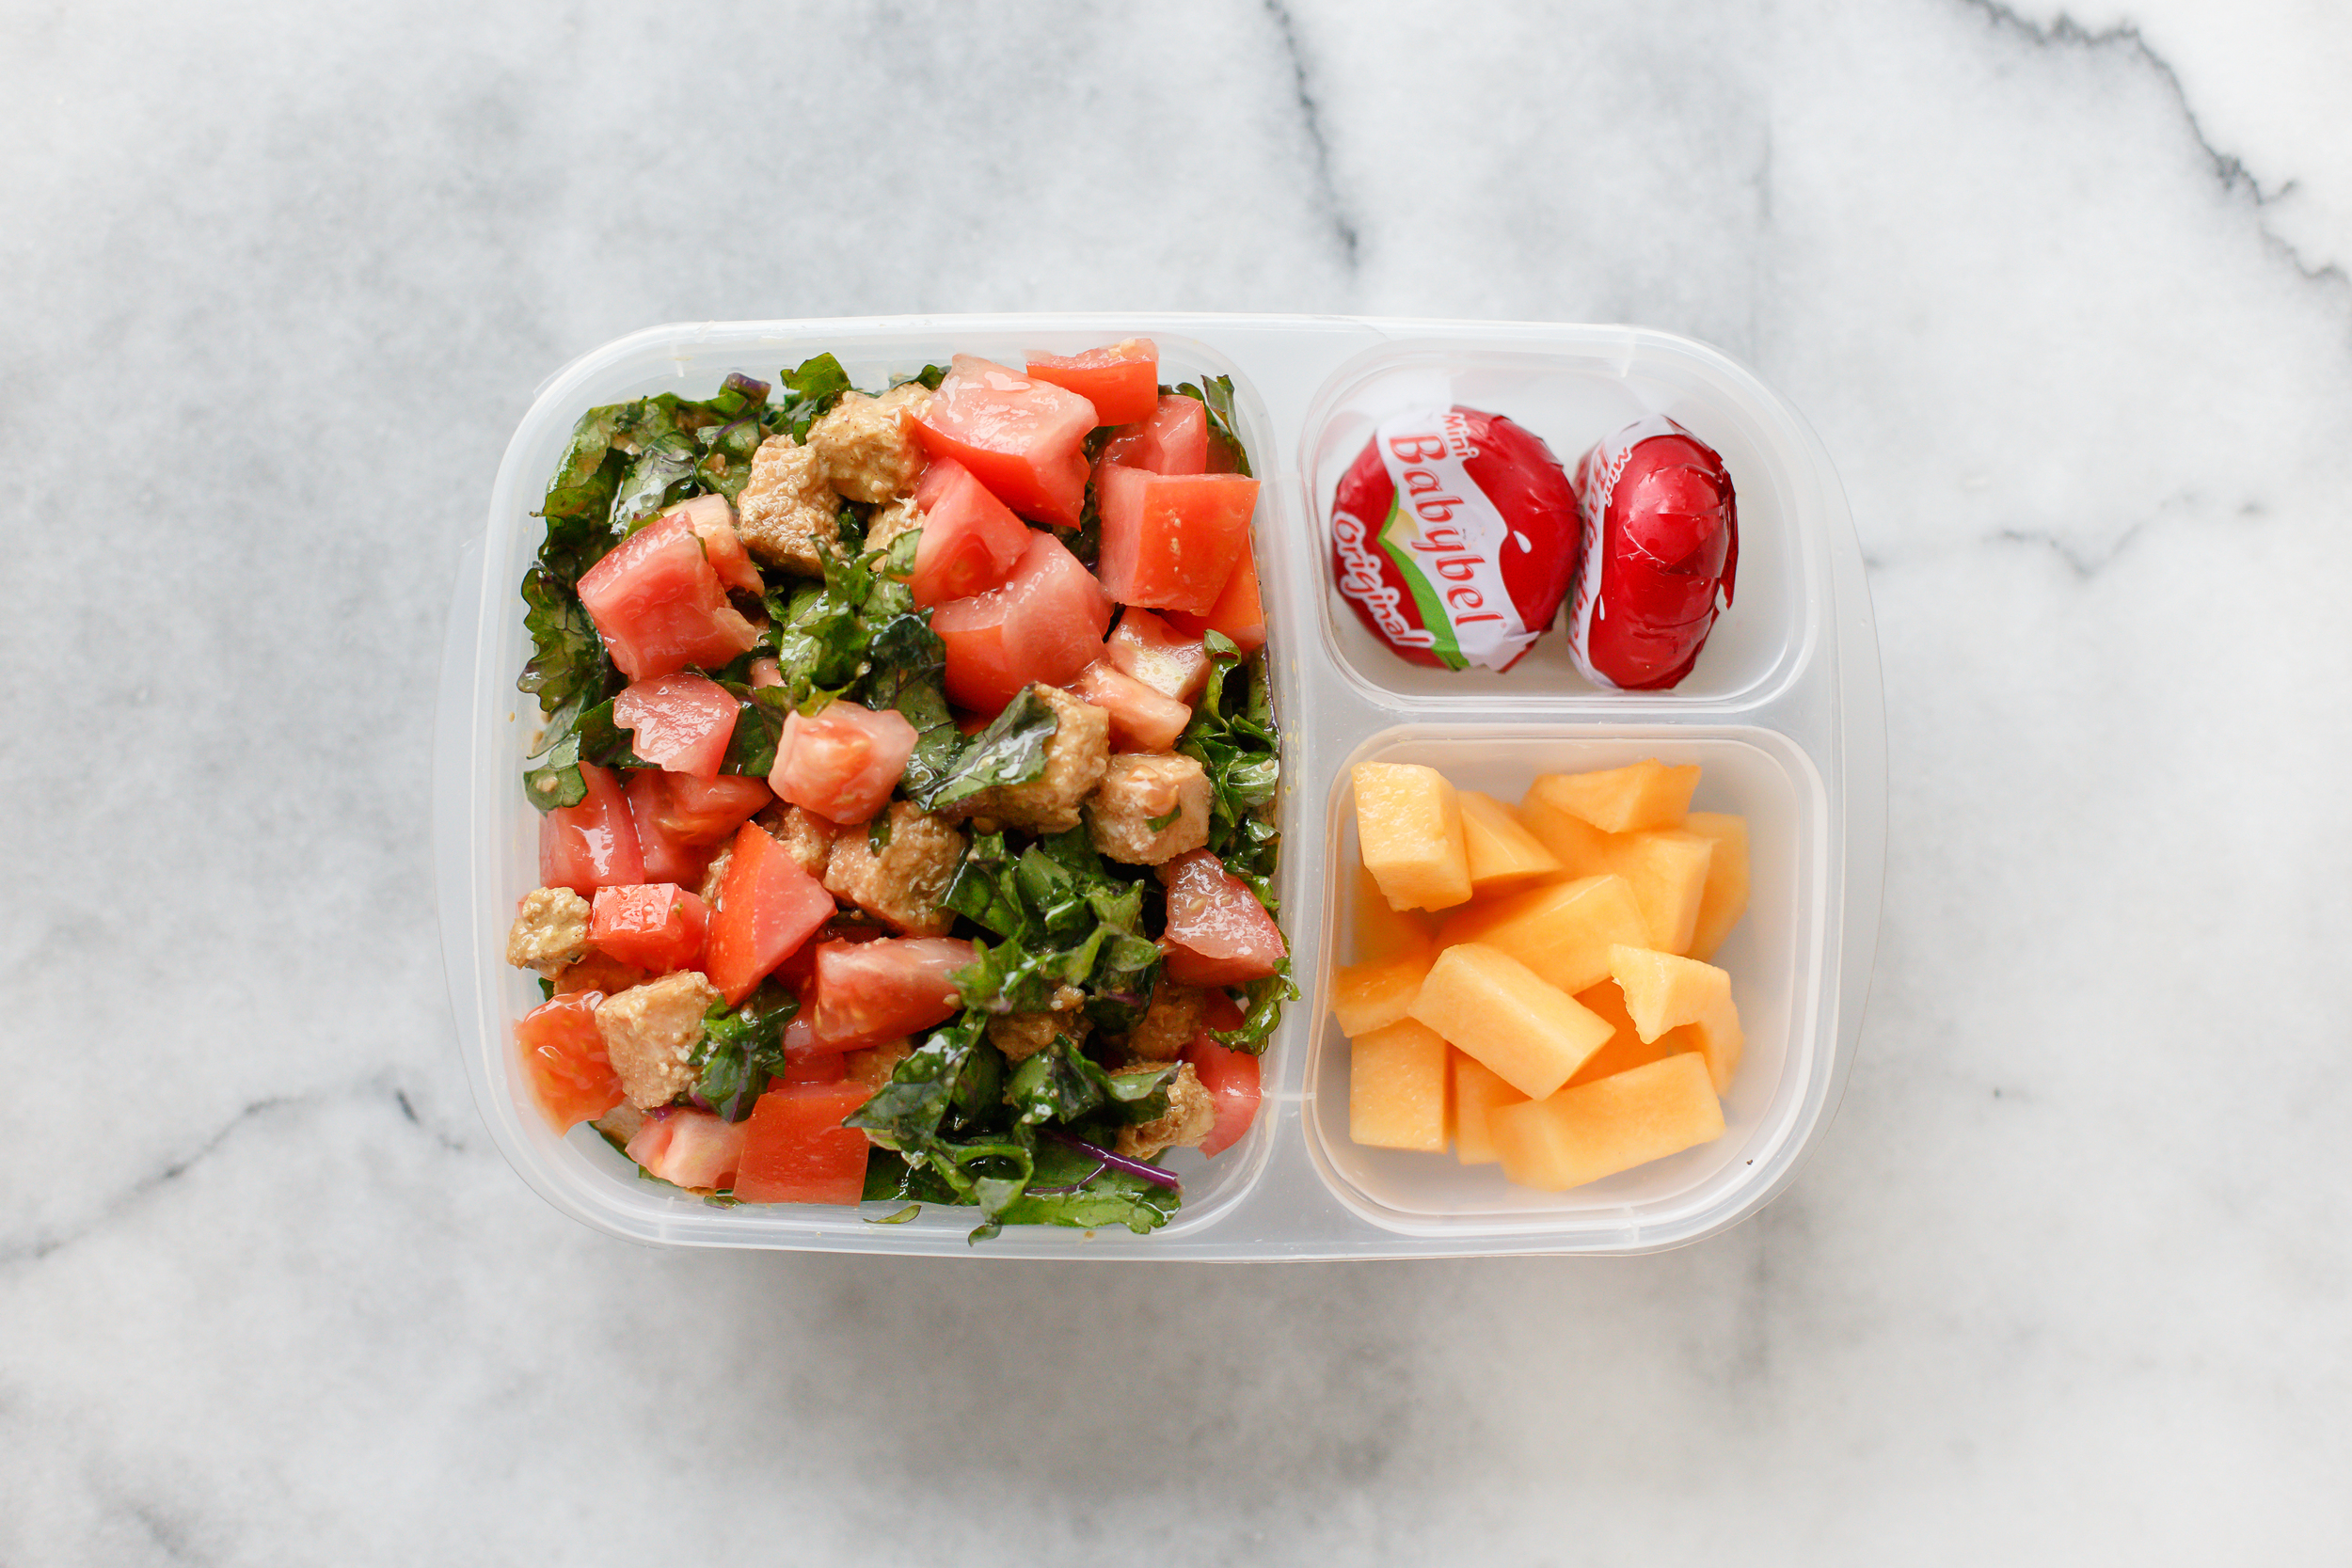 Mondays are my busiest day, and I'm so much happier when I remember to make a lunch for me too. This was a super quick salad of kale, tomatoes, and leftover salmon burger, just tossed in a very quick dressing of sesame oil and Bragg's Aminos, with some melon and cheese on the side.